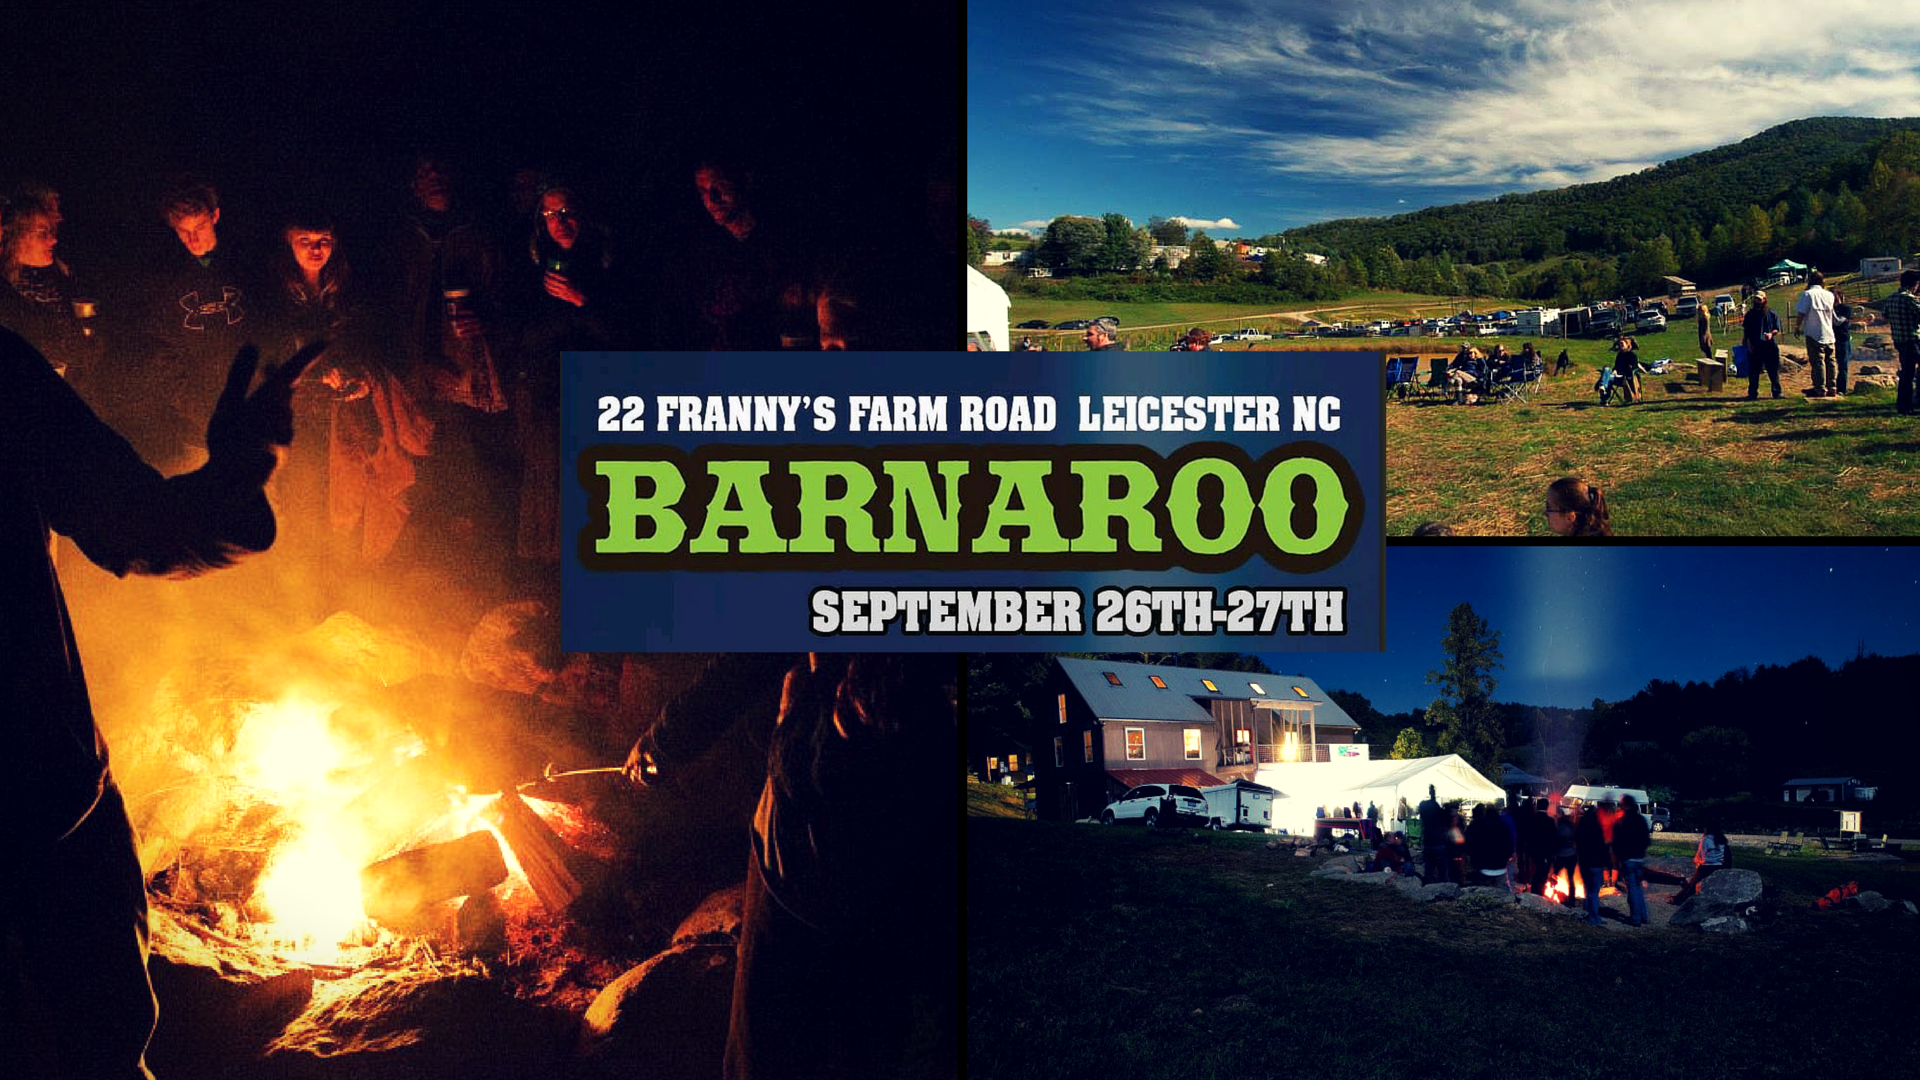 Les Amis, Lyric, Red Honey and more set for Barnaroo 2015 at Franny's Farm in Leicester